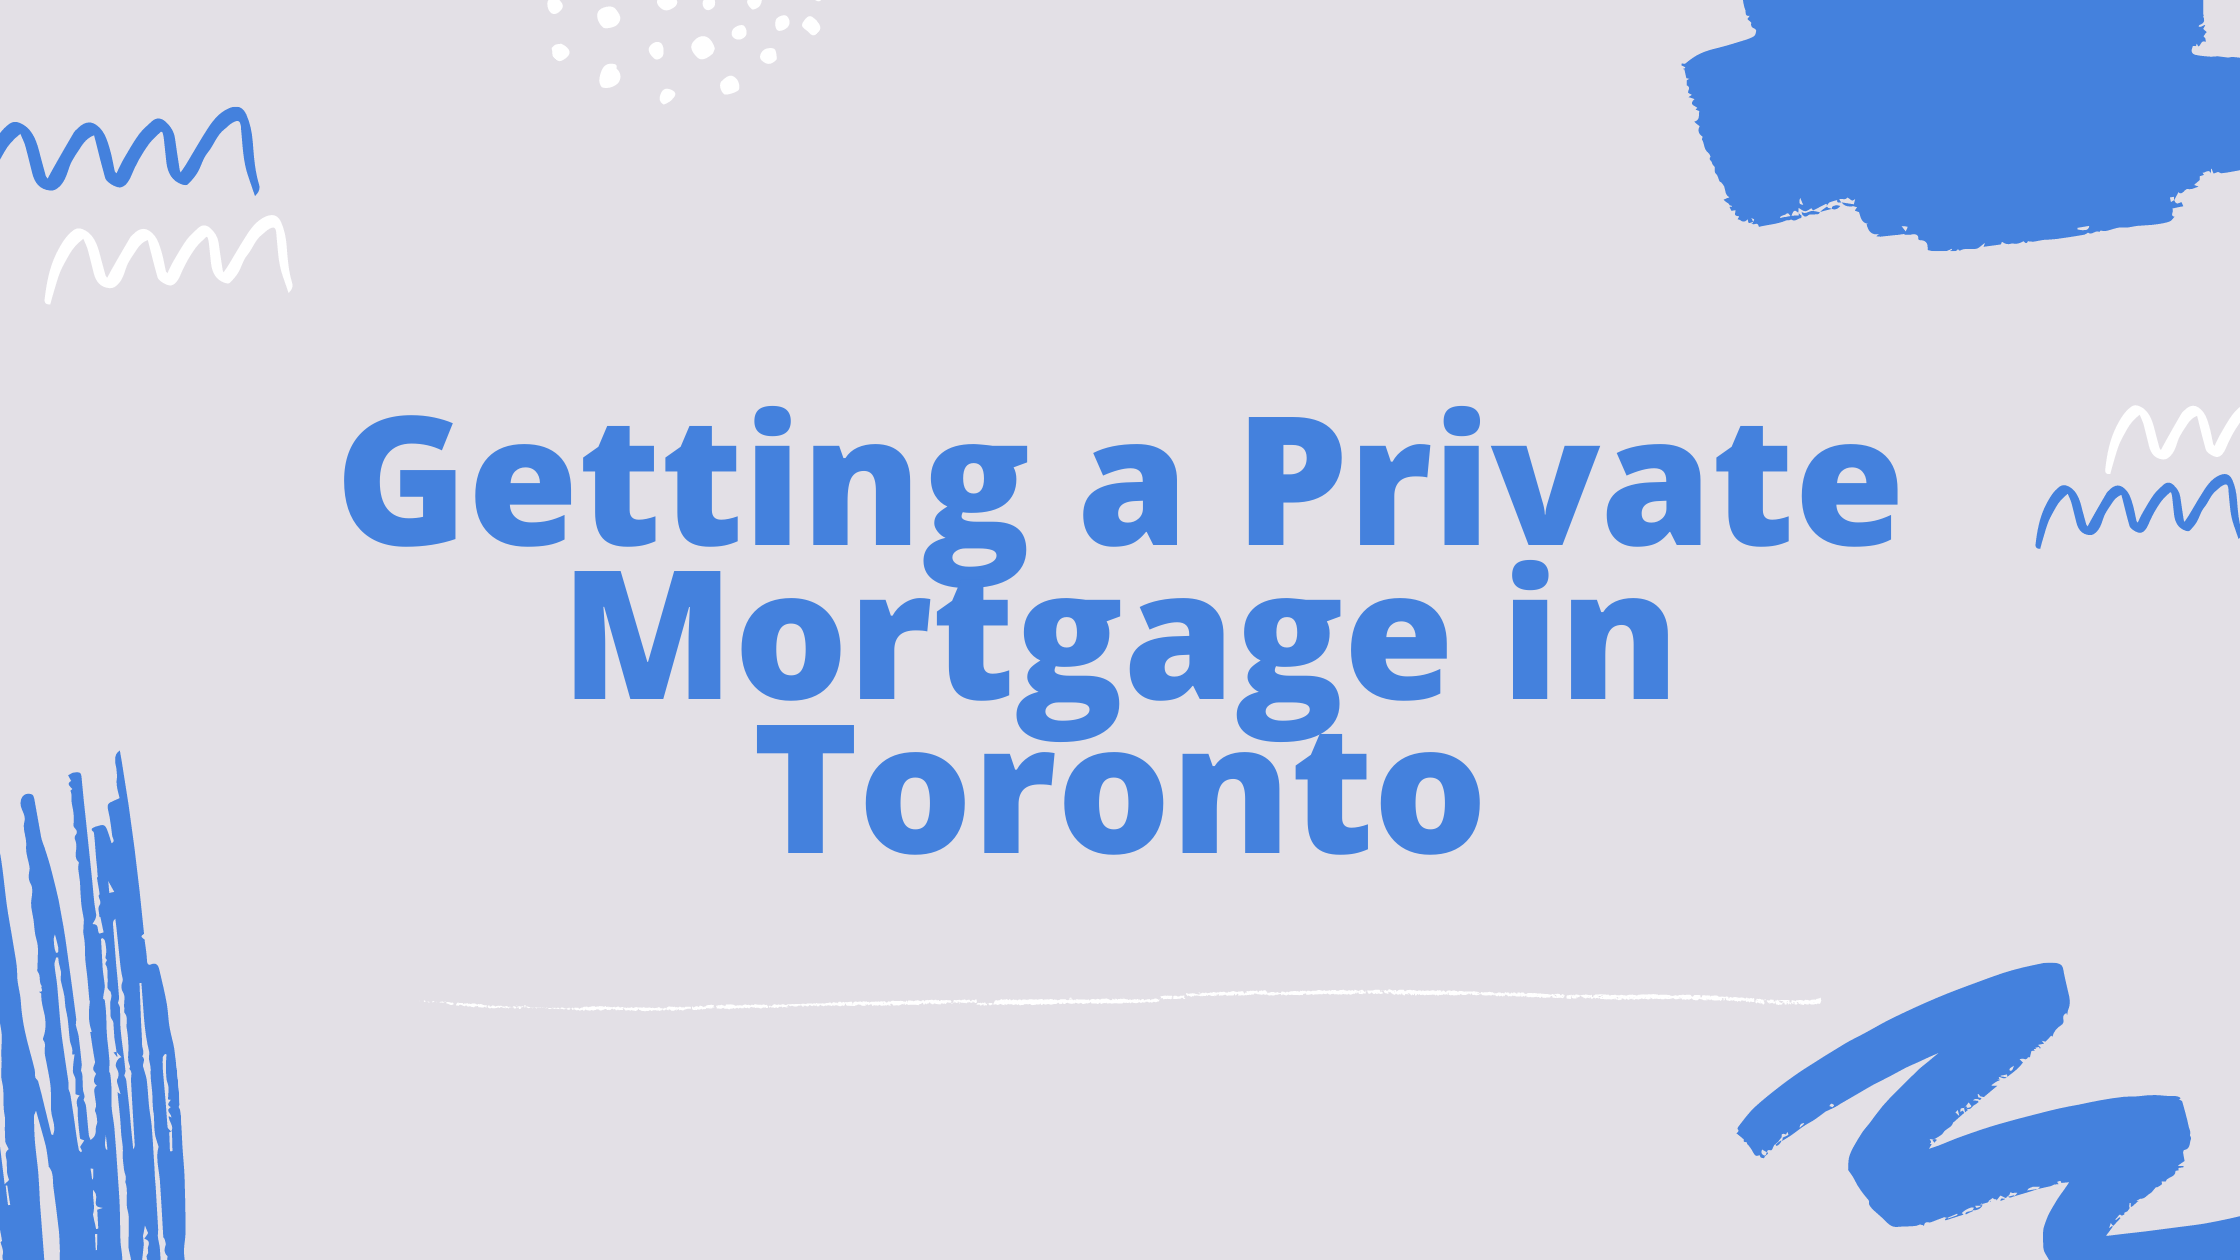 Getting a private mortgage in Toronto blog banner